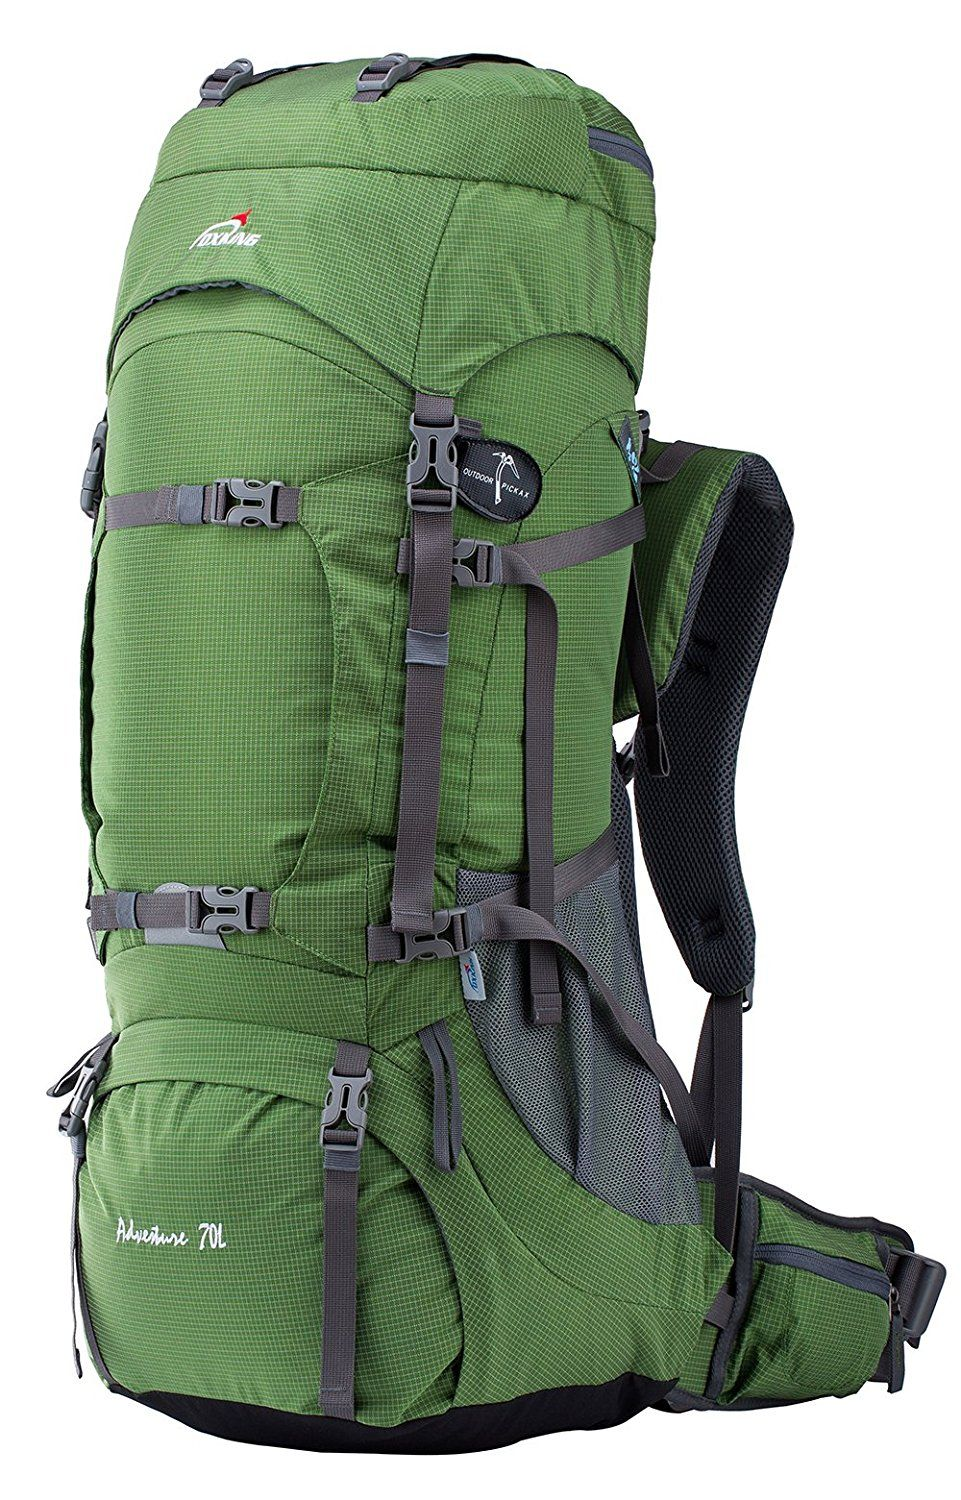 9e3d6b947111 Oxking 70L Outdoor Hiking Trekking Camping Backpack Waterproof  Mountaineering Bag Large Travel Climbing Rucksack with Rain Cover    Wow! I  love this.